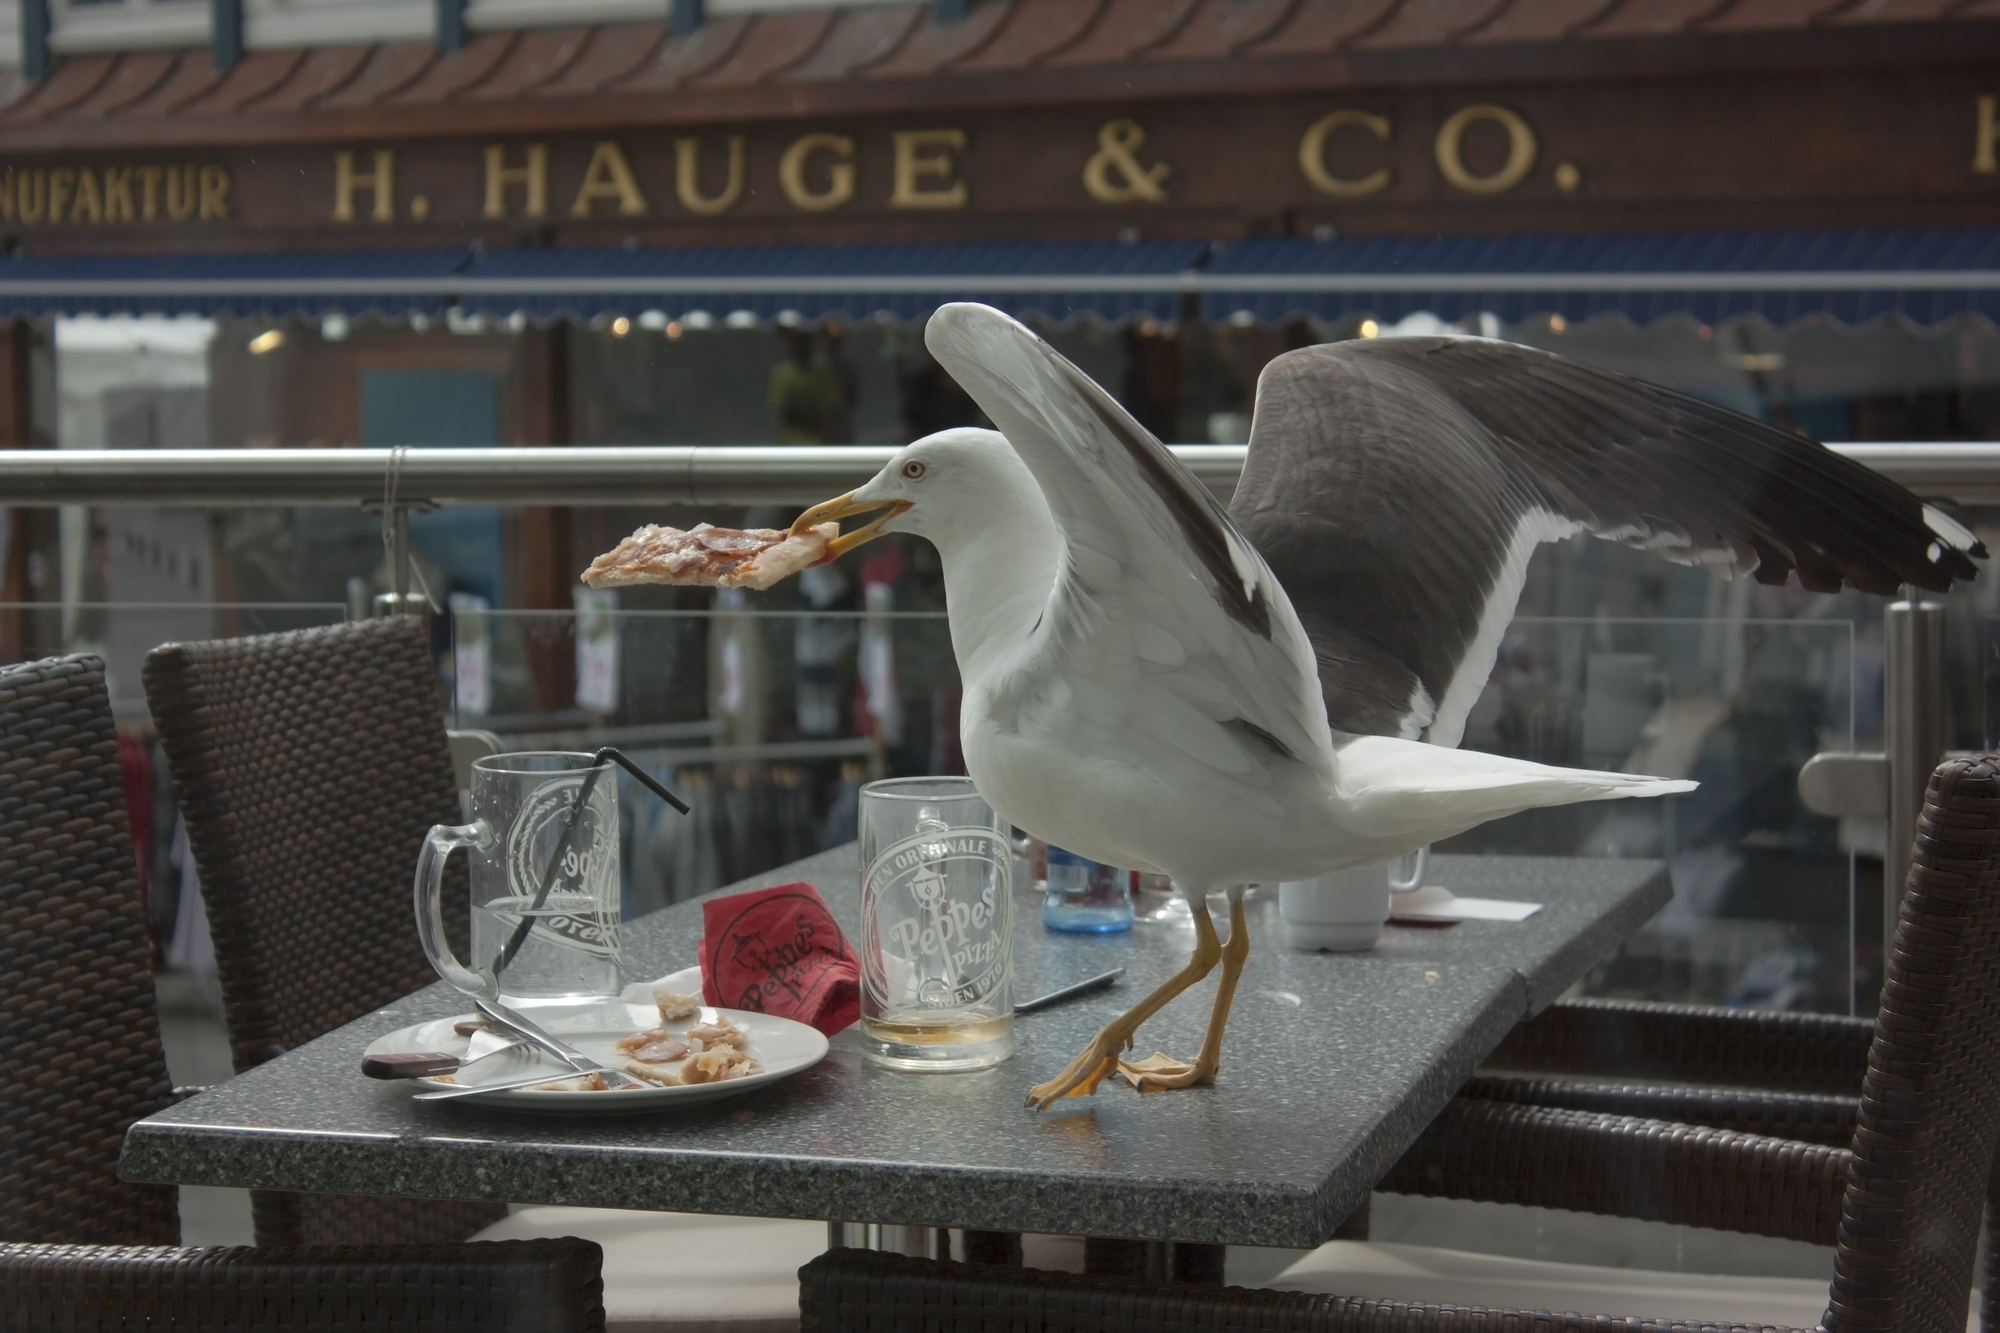 Seagulls hunger for food touched by human hands